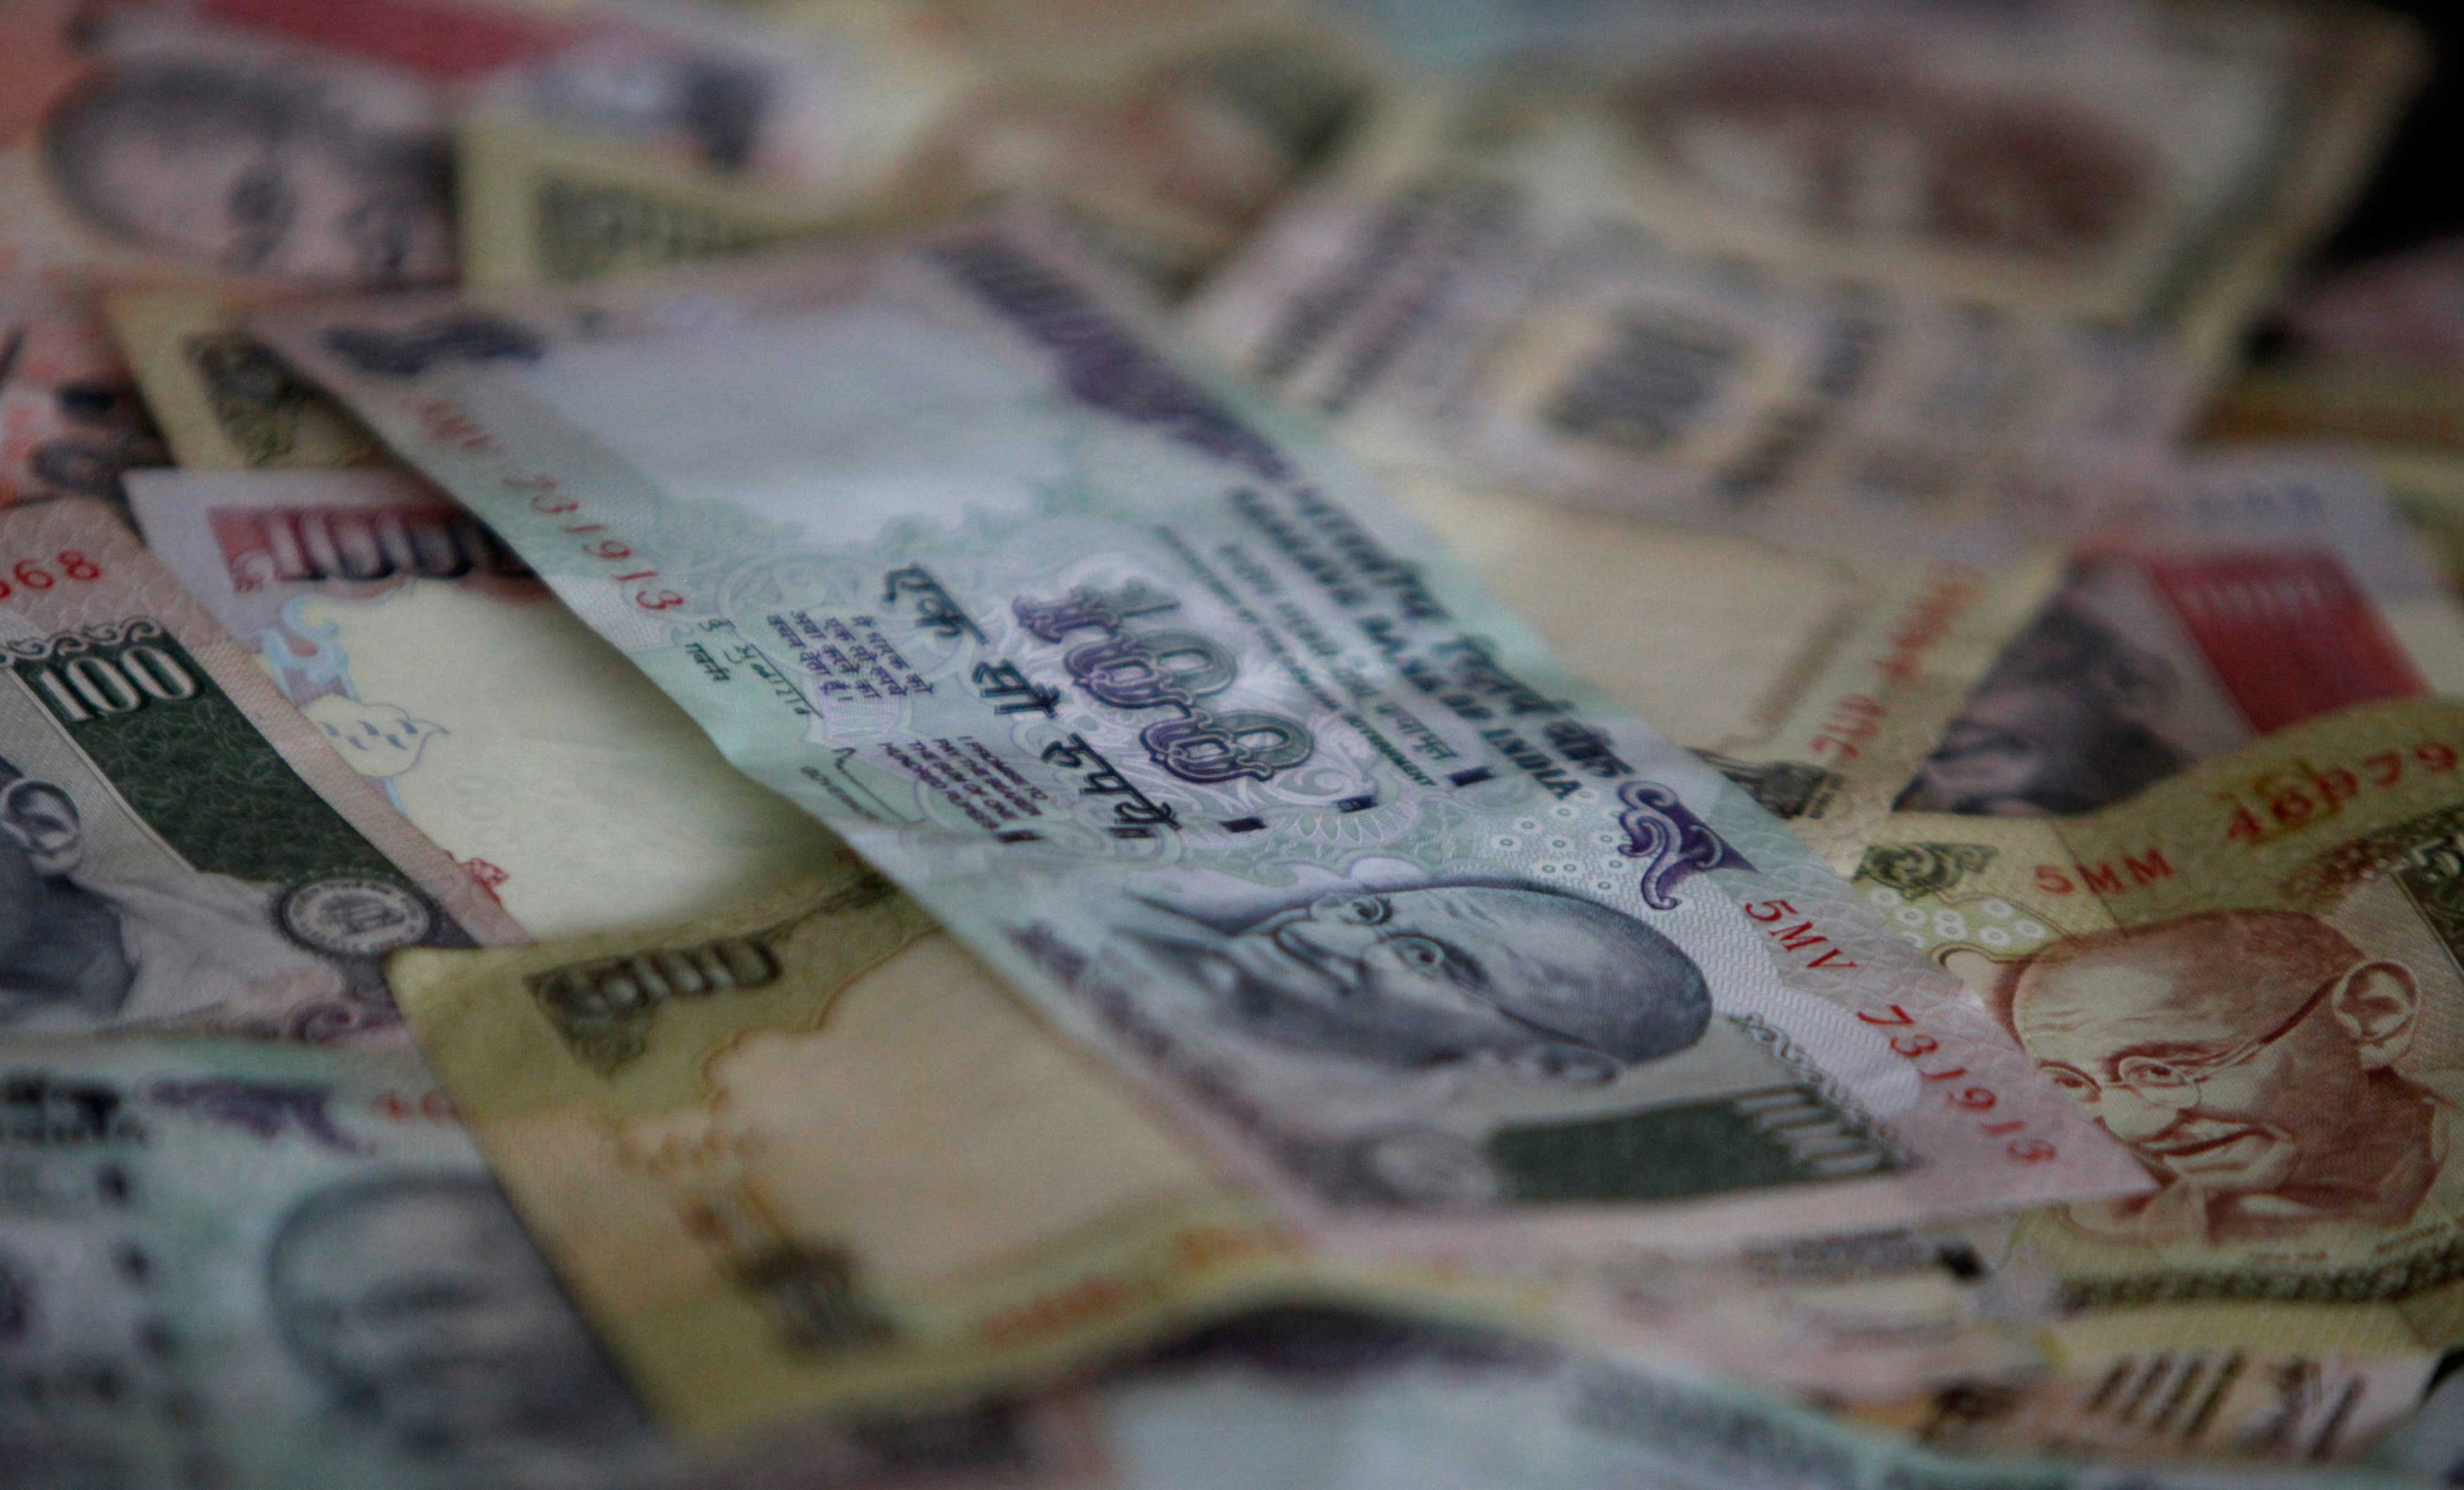 Clearwater's NBFC Altico raises funding from Spice PE, others